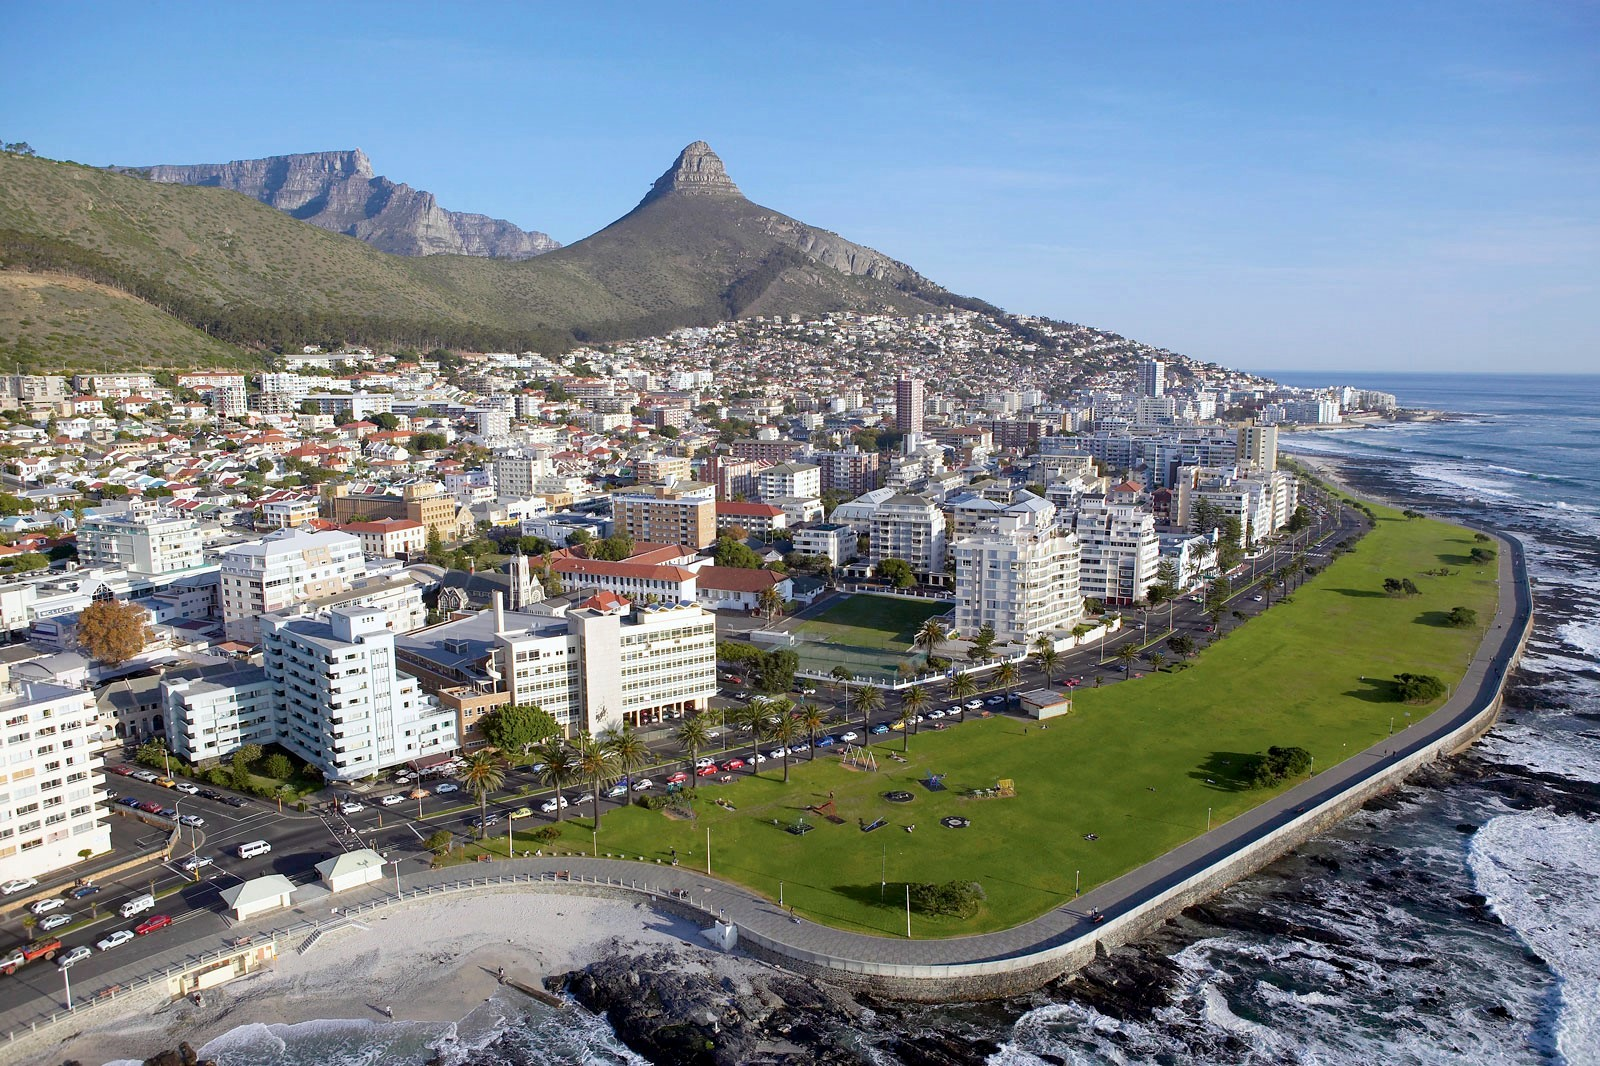 Aerial_View_of_Sea_Point,_Cape_Town_South_Africa.jpg